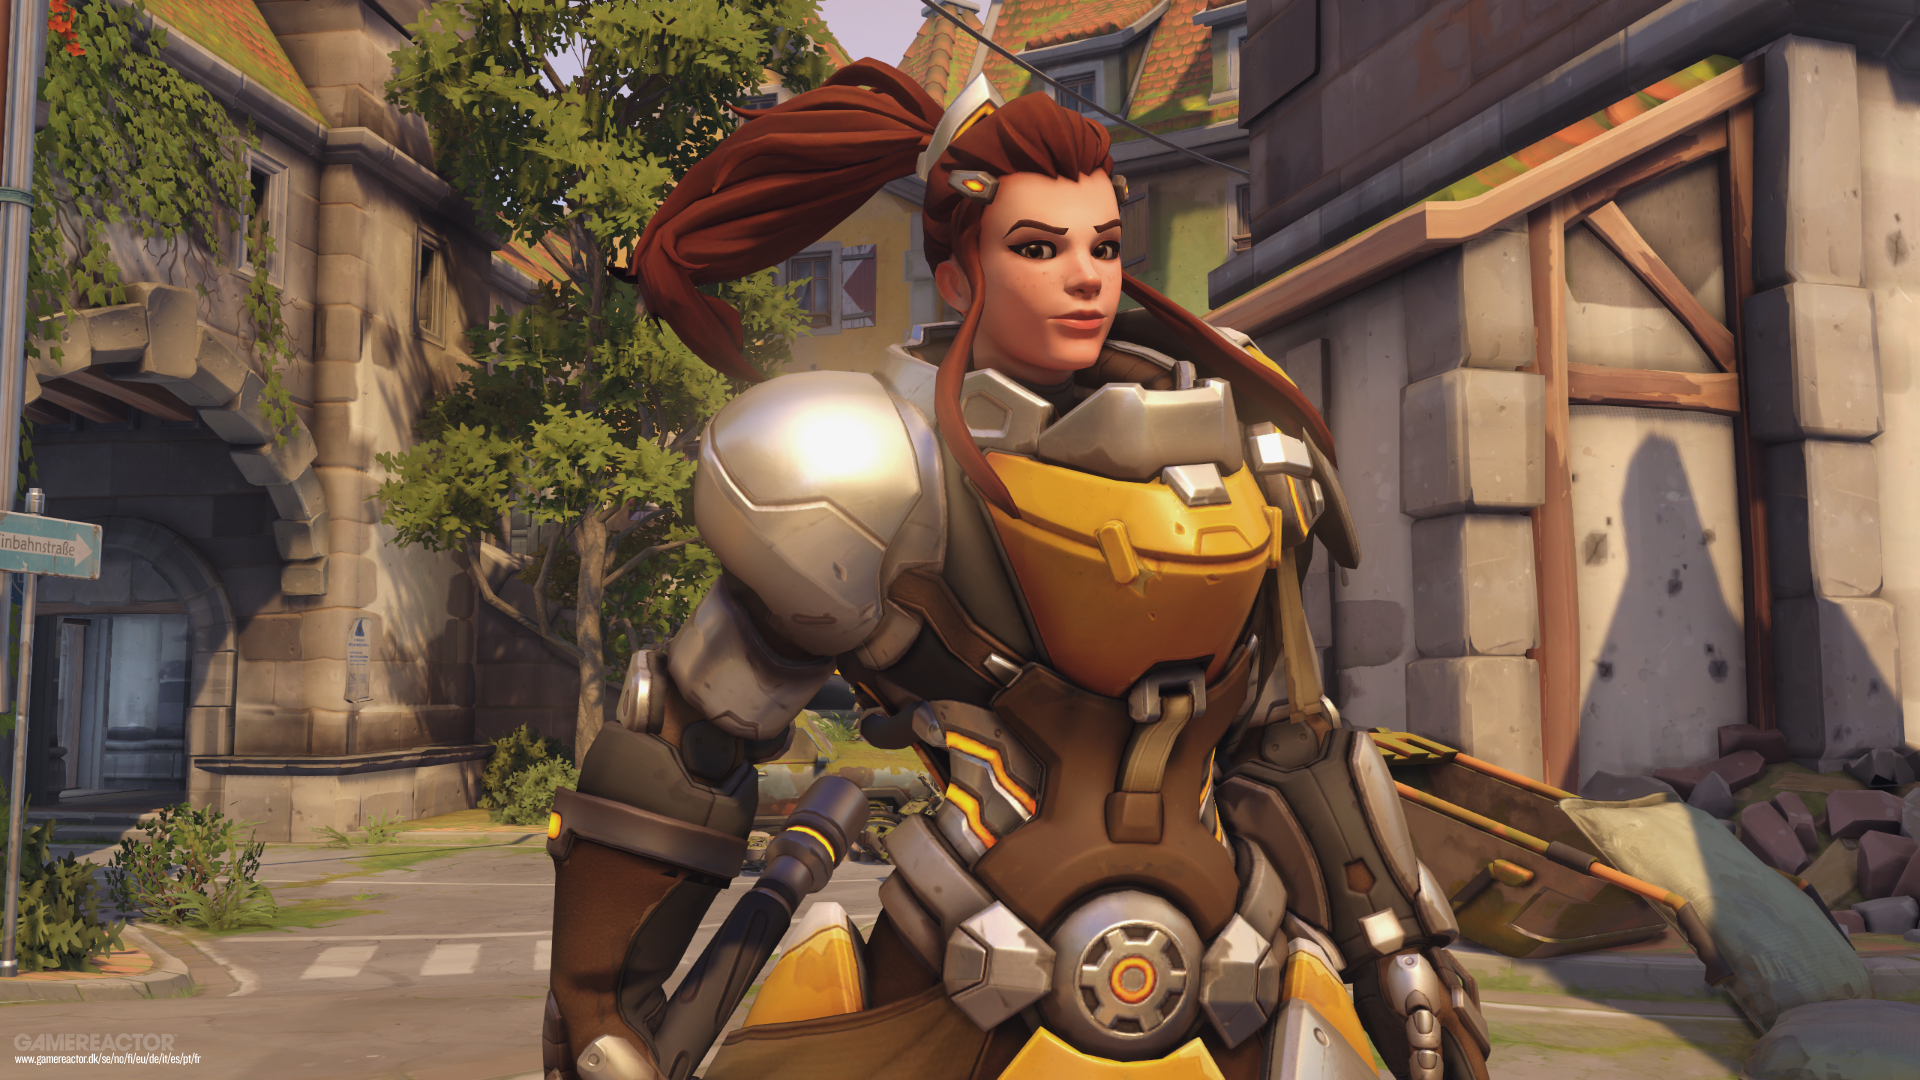 Overwatch Brigitte Wallpaper Iphone